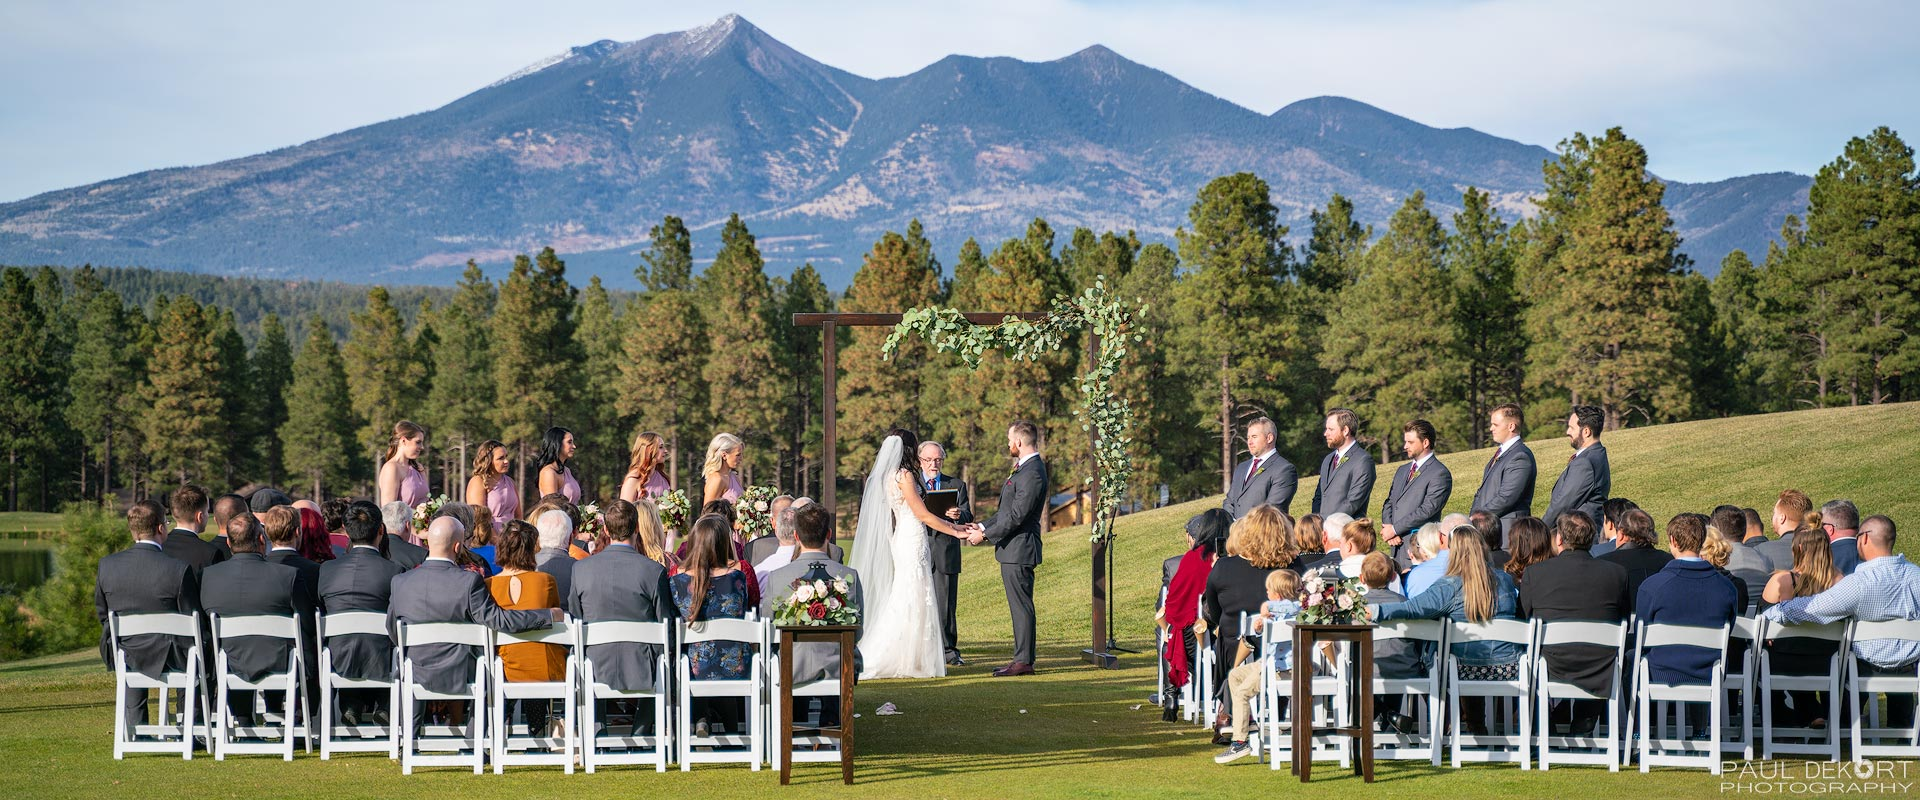 Wedding Photography - Wedding Ceremony in front of Flagstaff mountains.